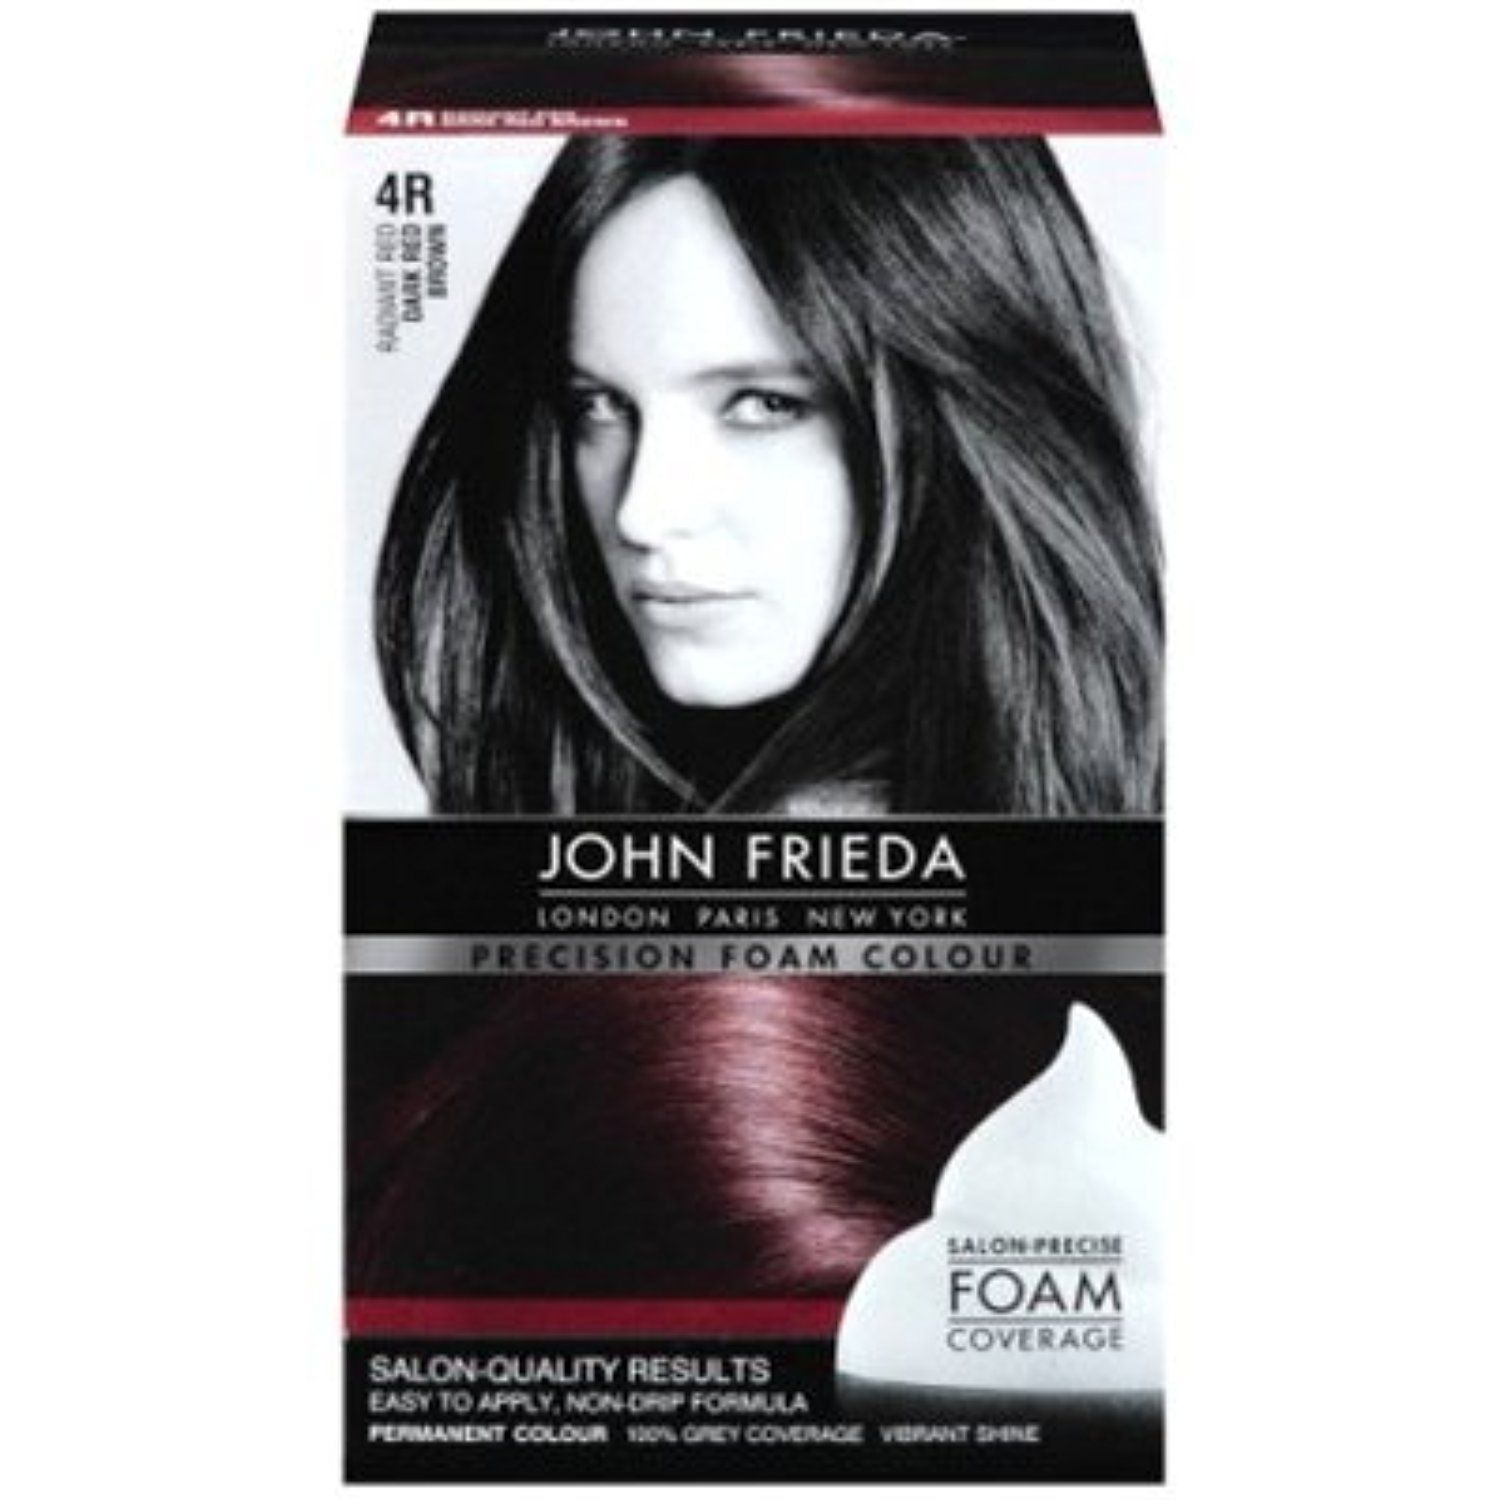 John Frieda Precision Foam Colour 4r Dark Red Brown 2 Pack